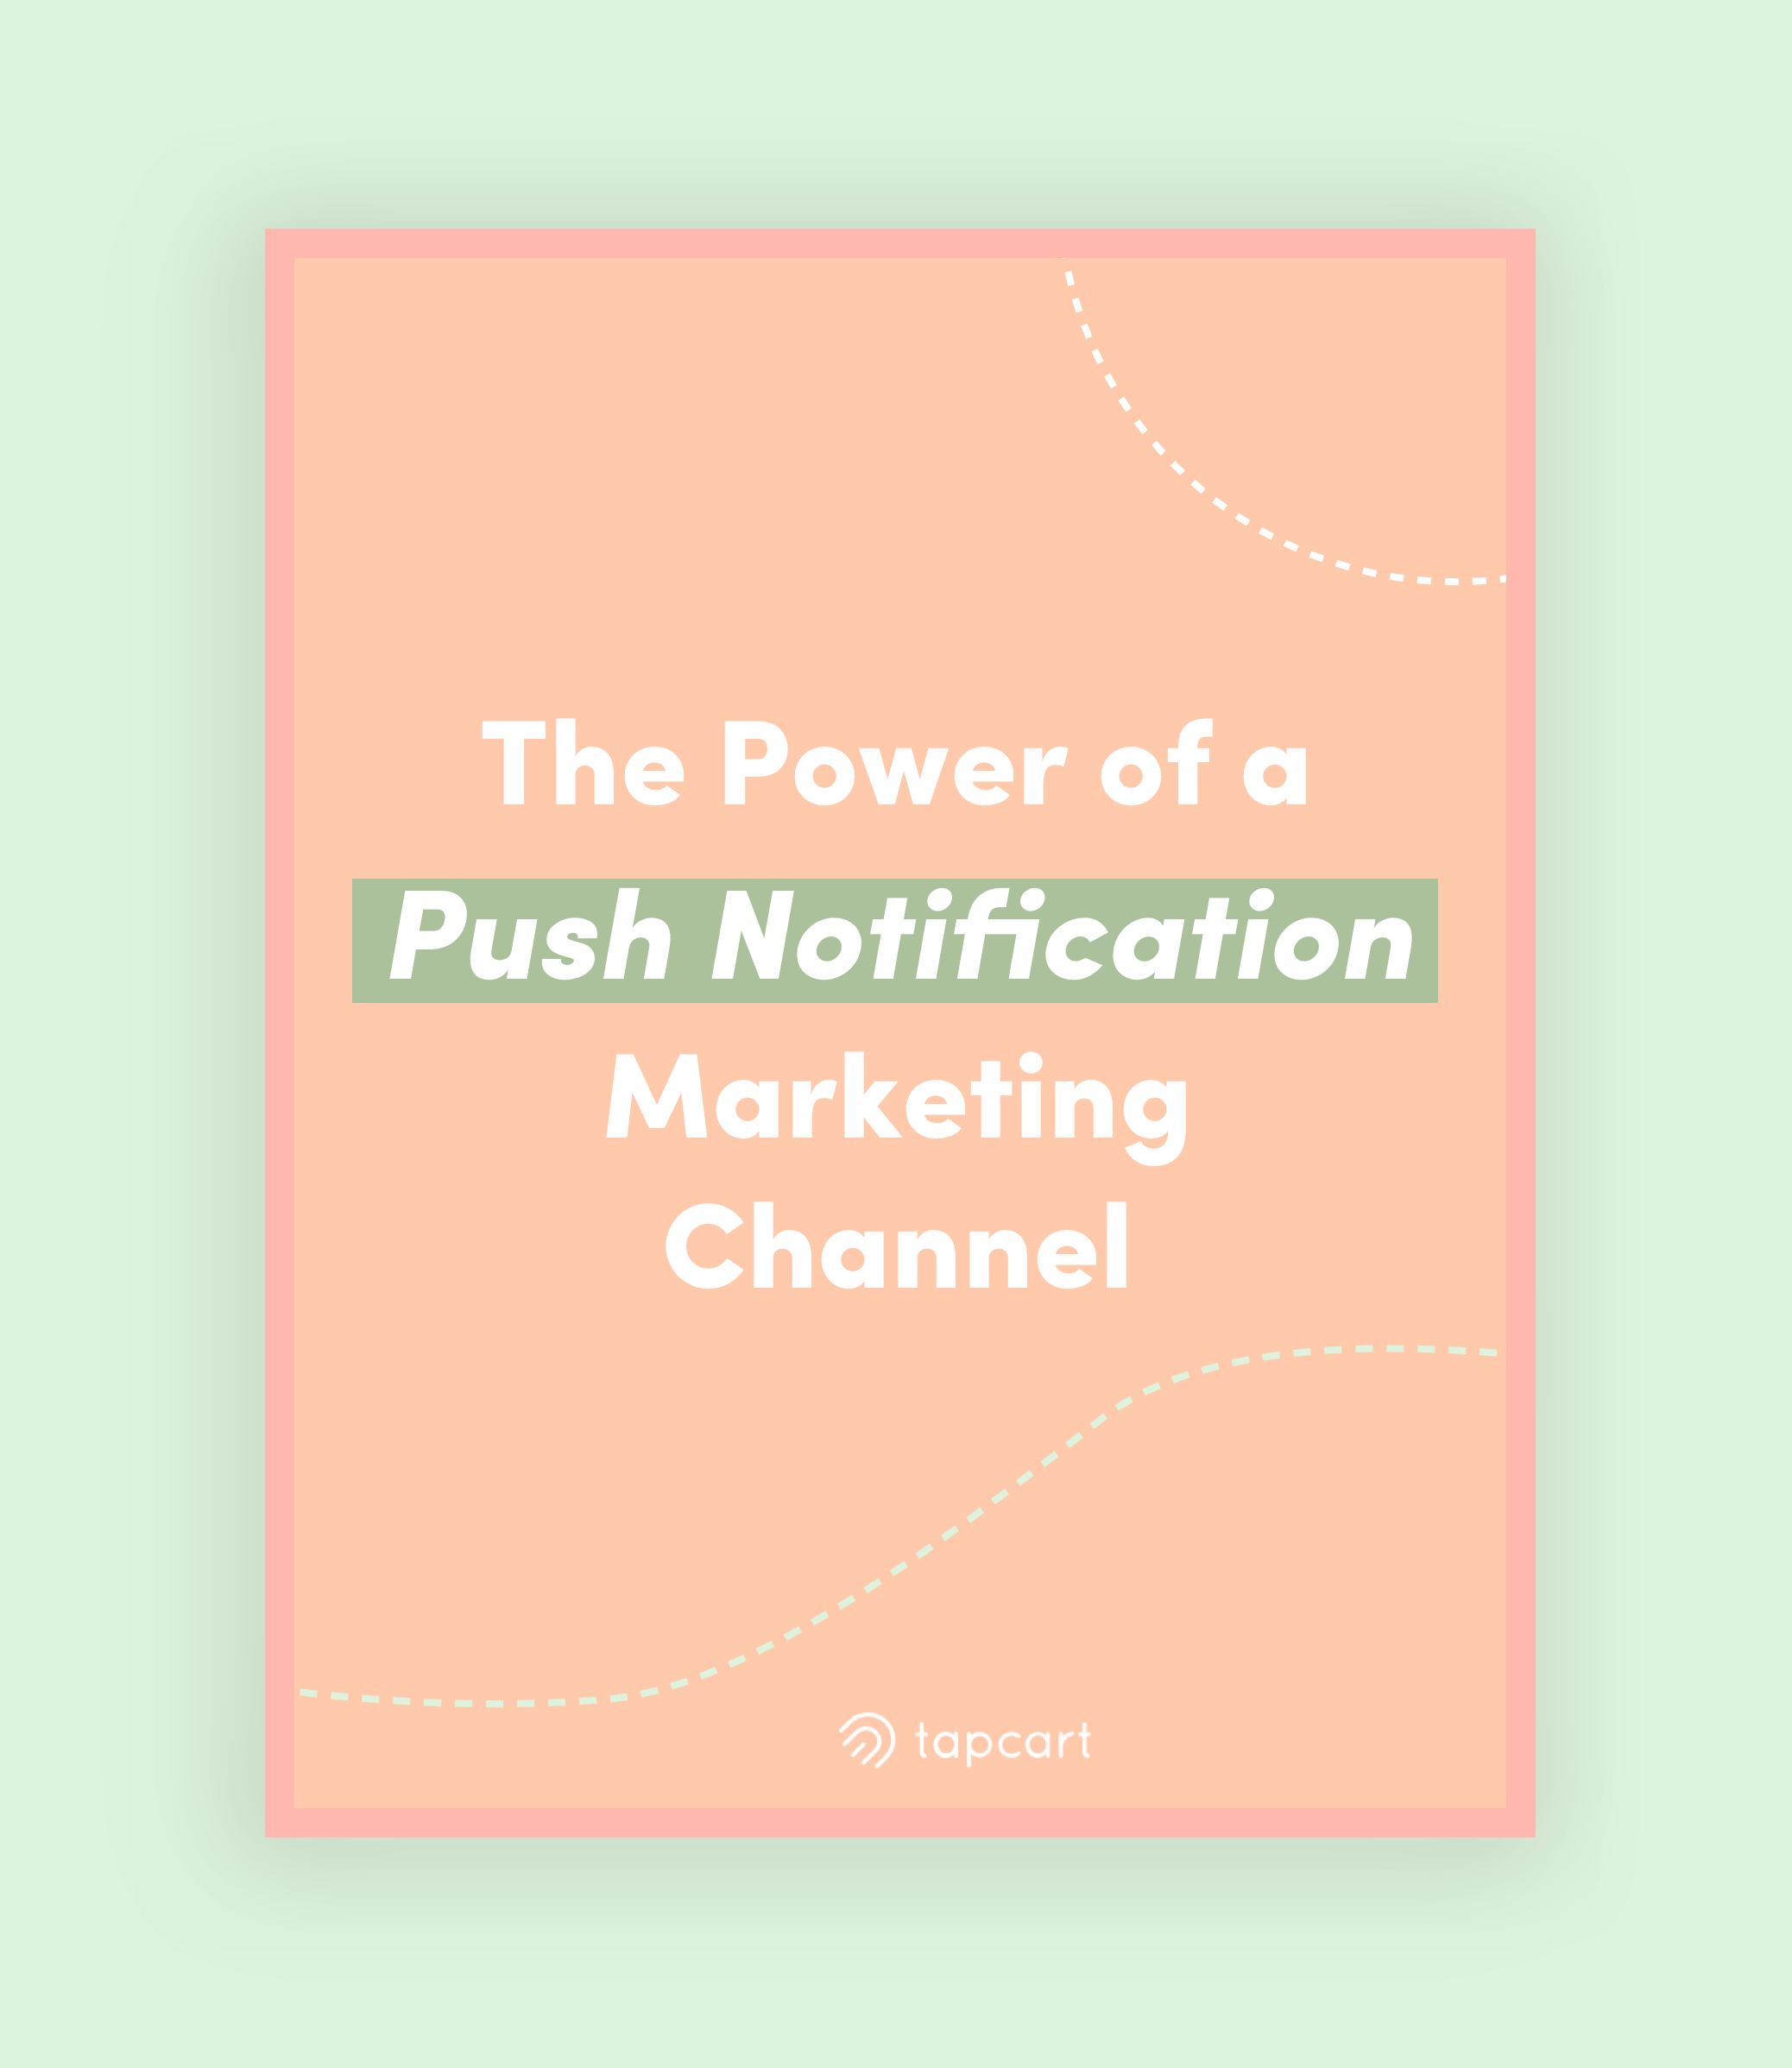 The Power of a Push Notification Marketing Channel